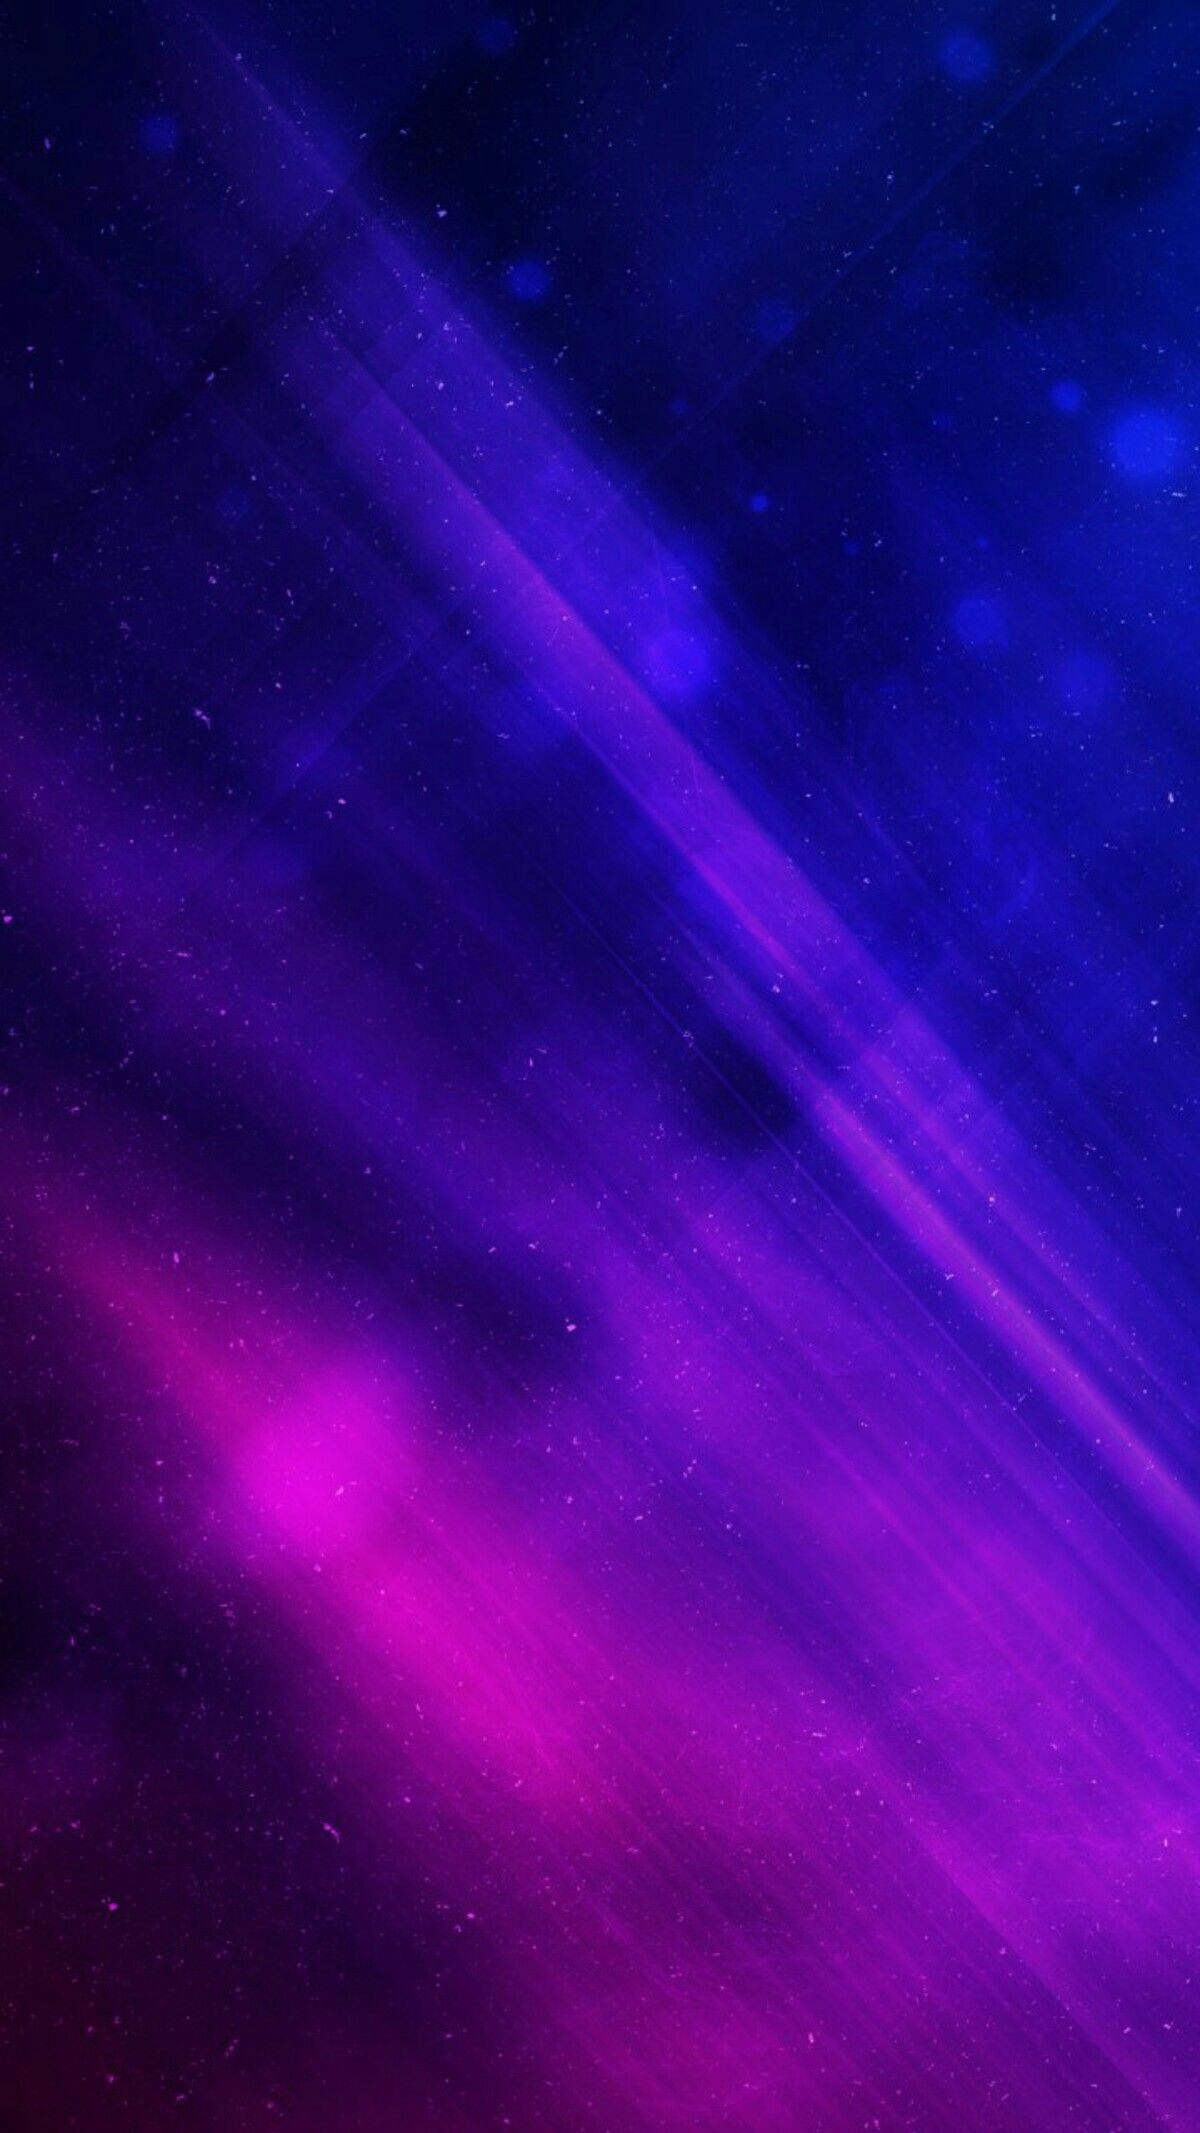 Blue and Purple Cool wallpapers for phones, Neon wallpaper